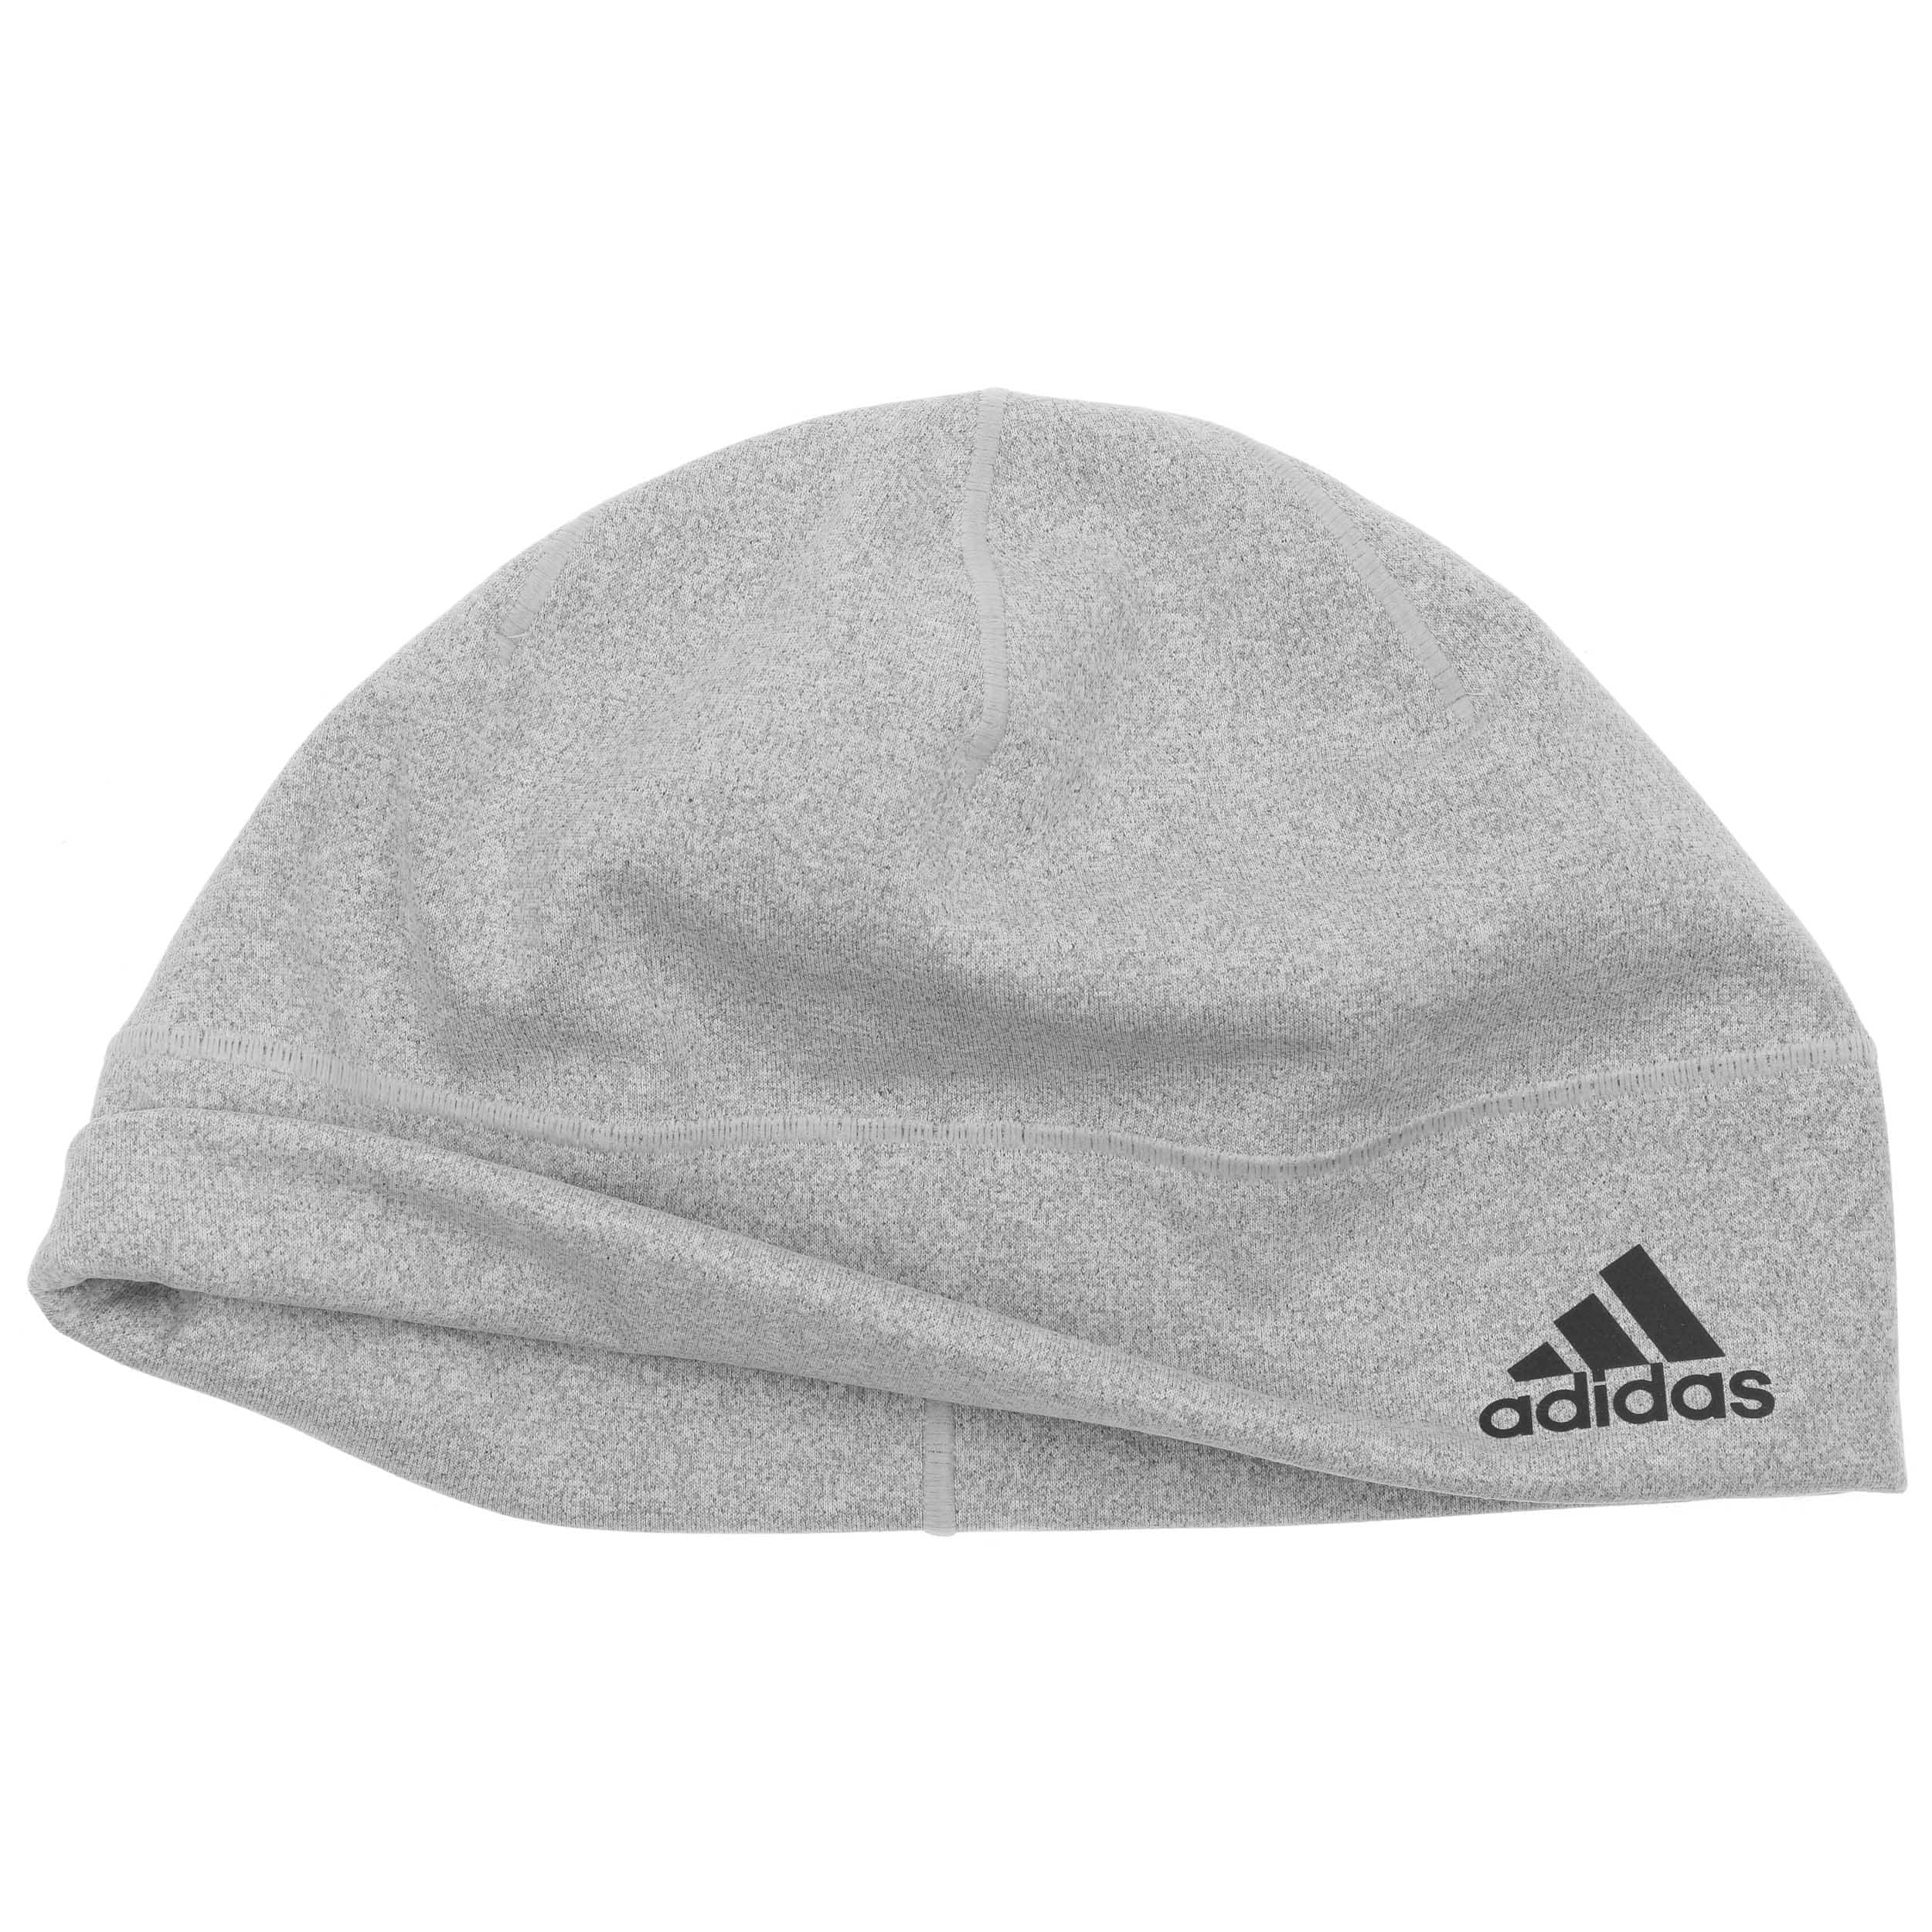 e24f4d7b284 Climaheat Performance Beanie by adidas - 1 ...